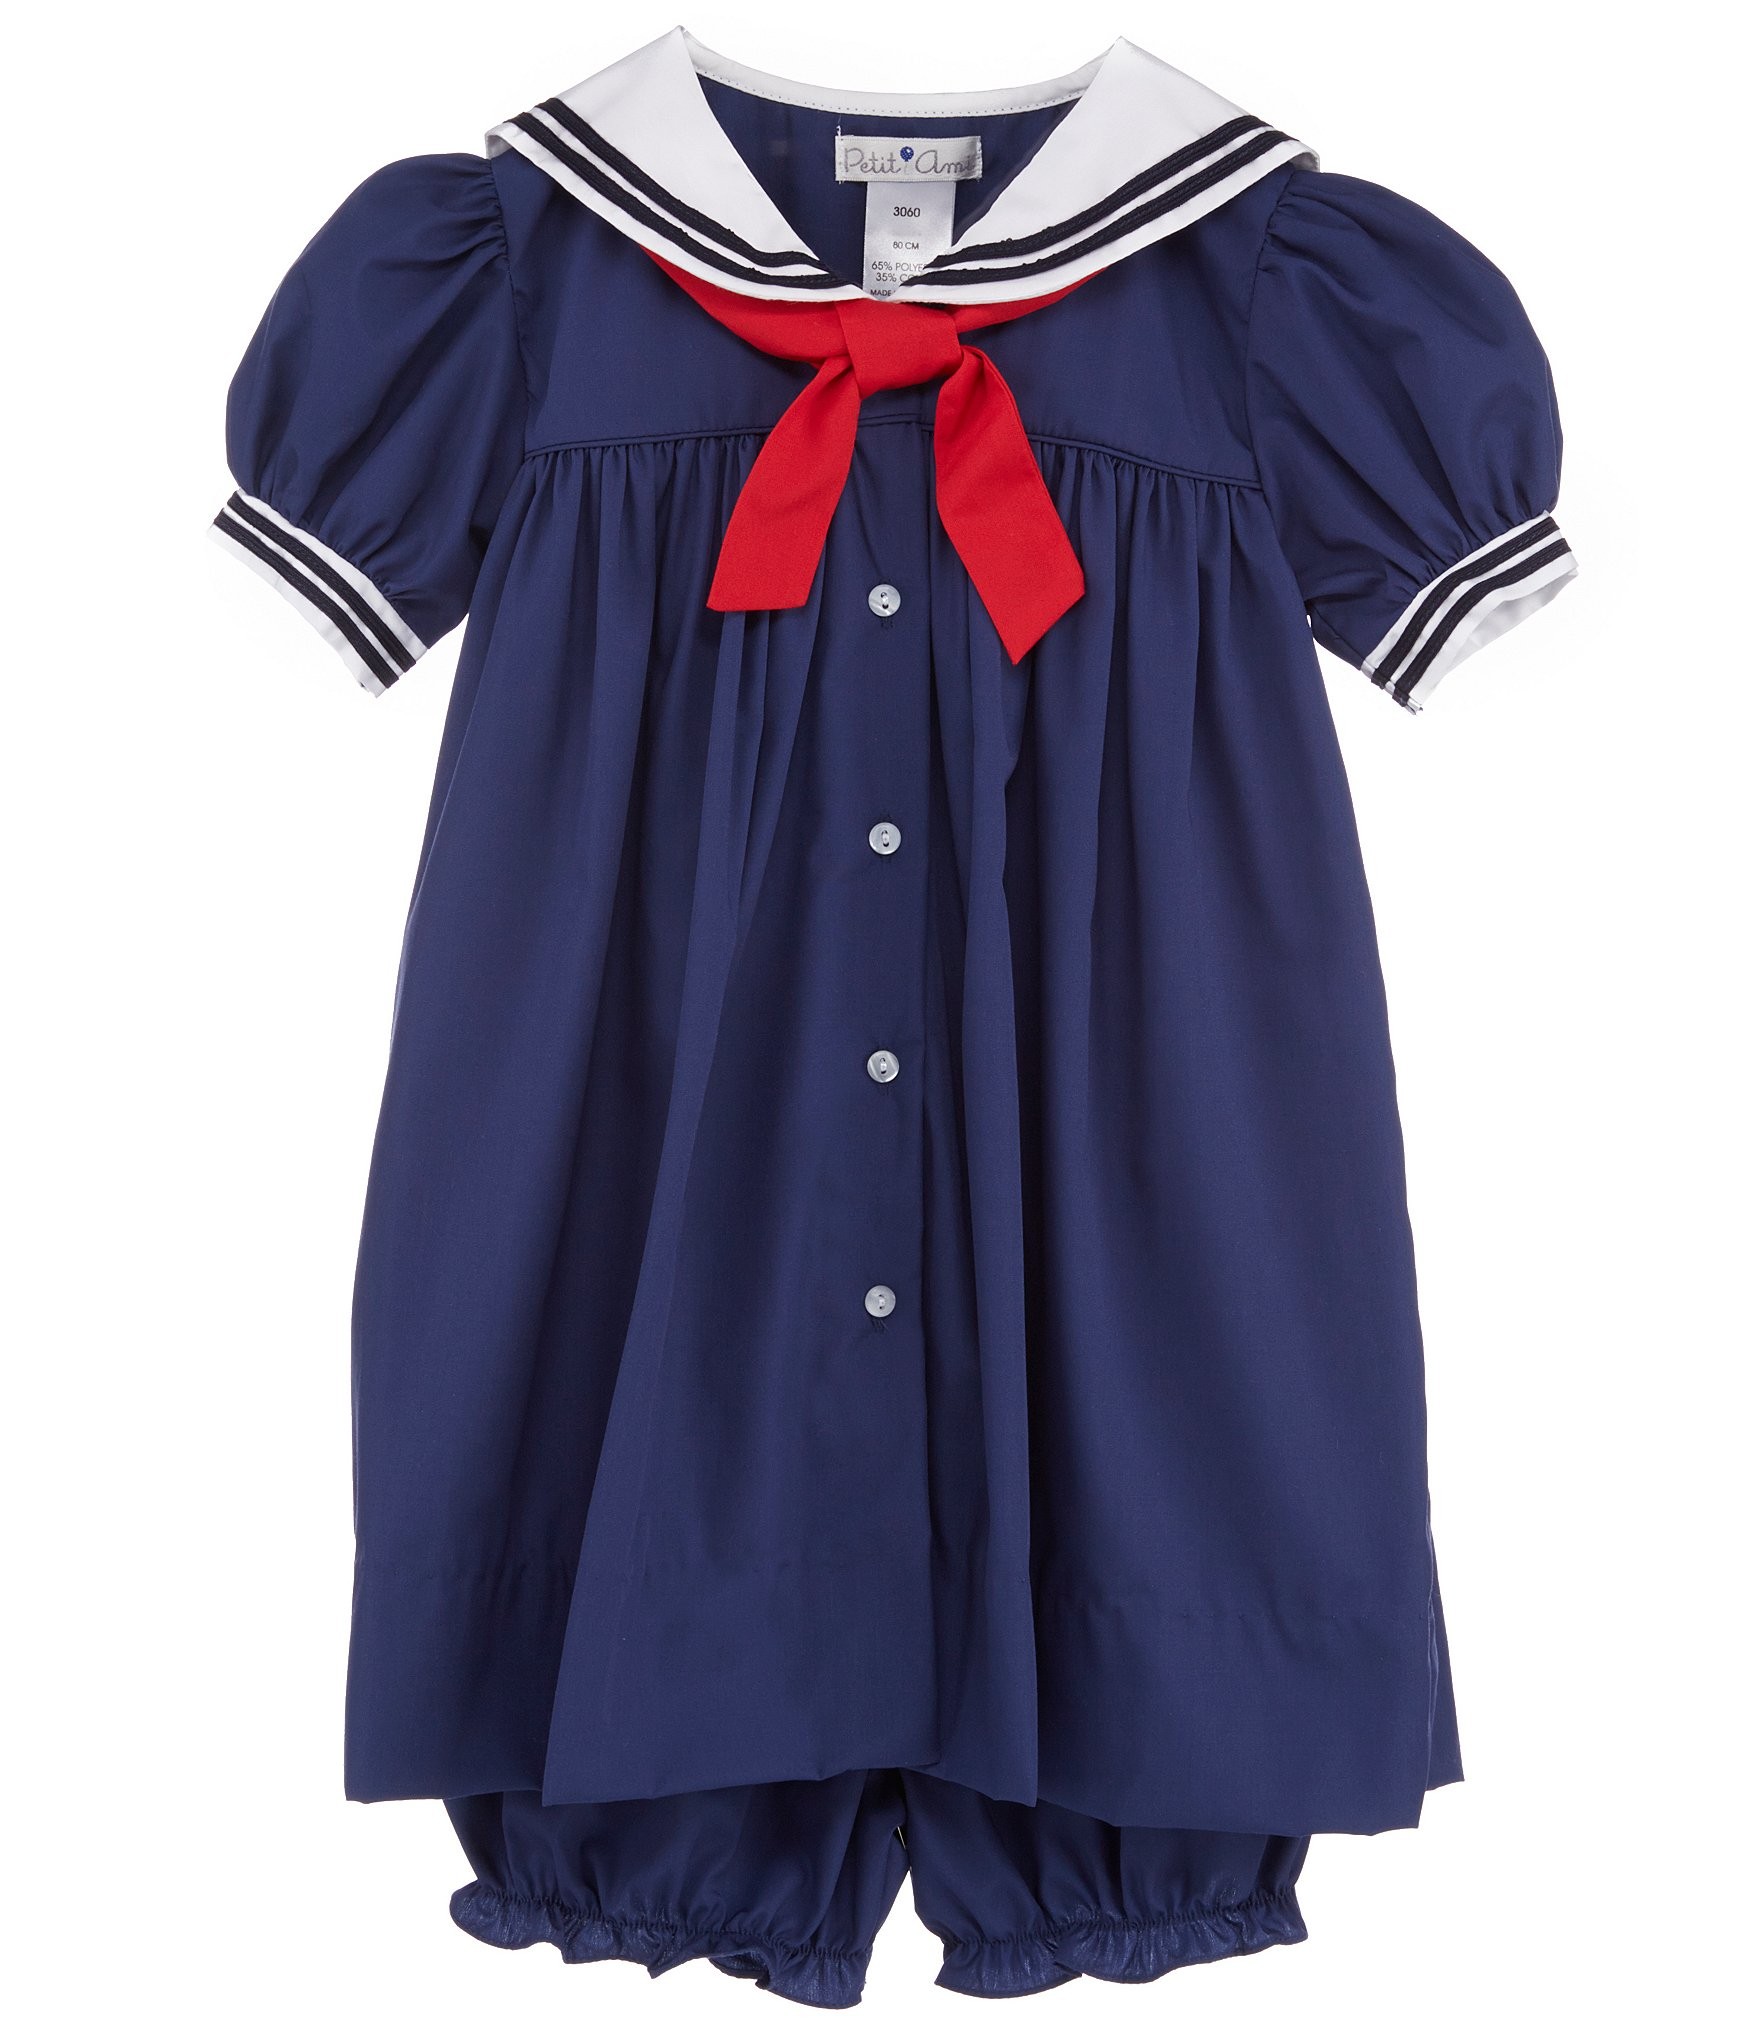 Find great deals on eBay for baby sailor dress. Shop with confidence.